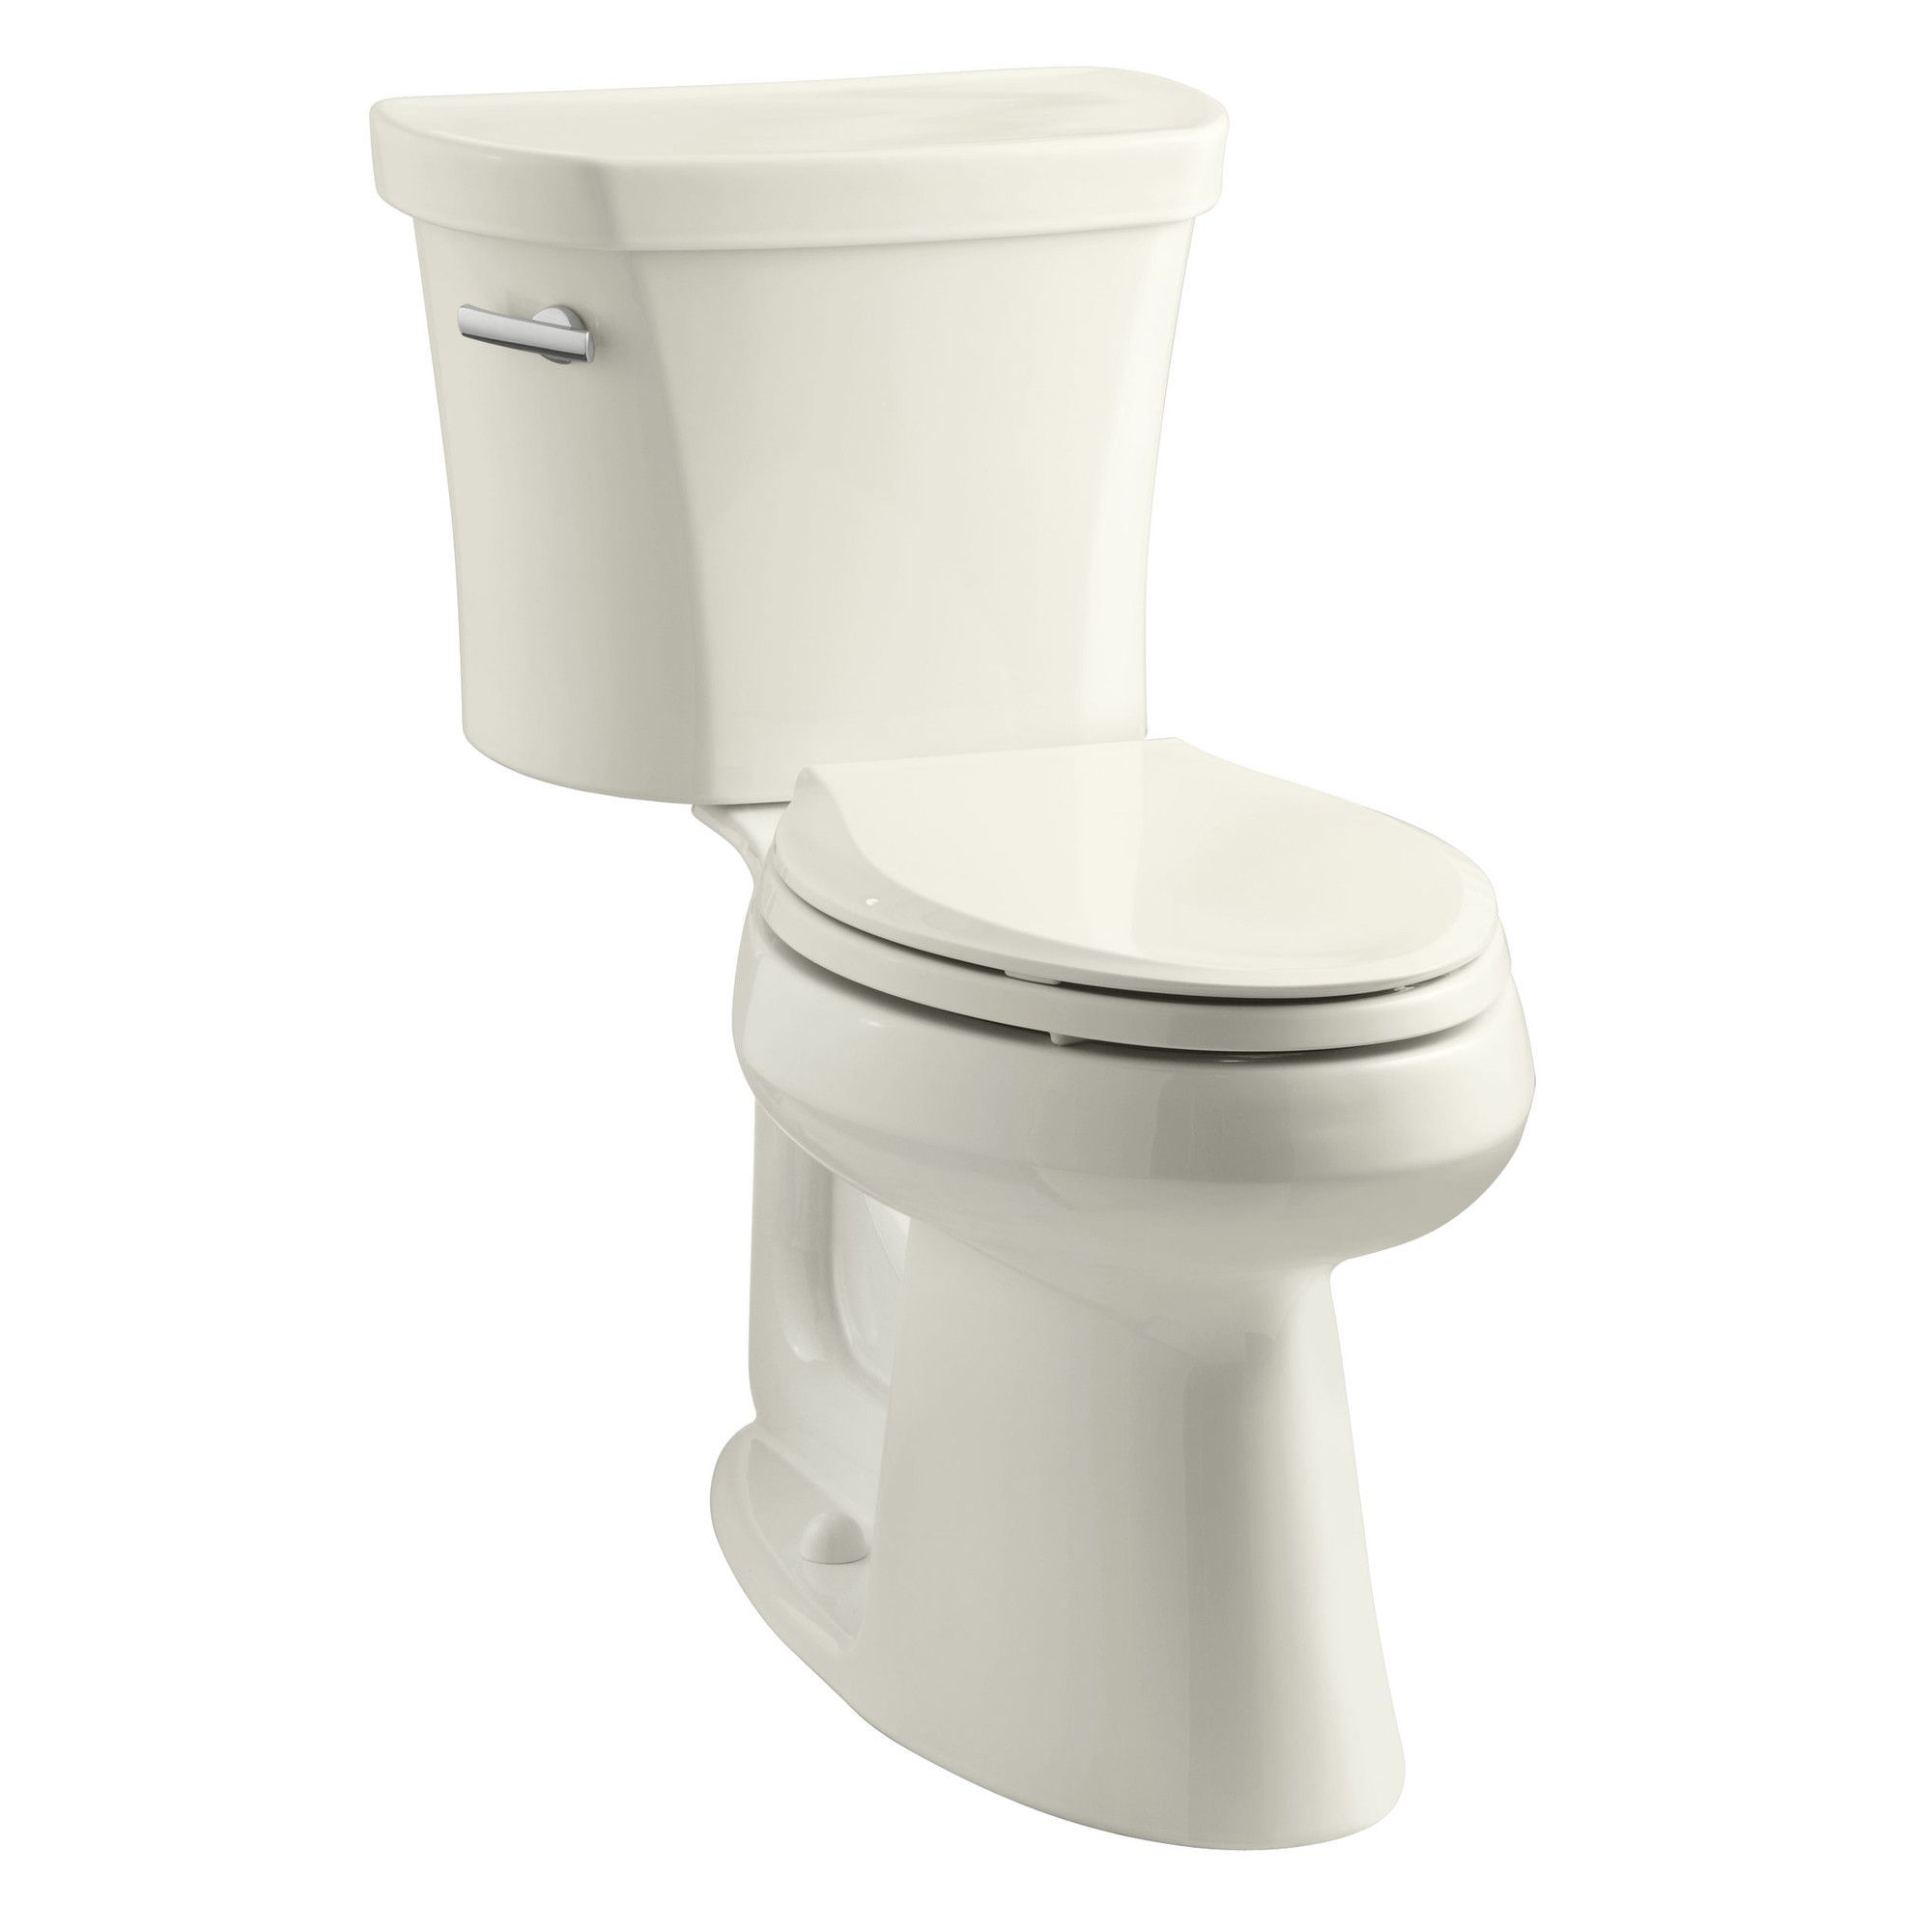 Highline Comfort Height Two-Piece Elongated 1.28 GPF Toilet with Class Five Flush Technology, Left-Hand Trip Lever and Tank Cover Locks